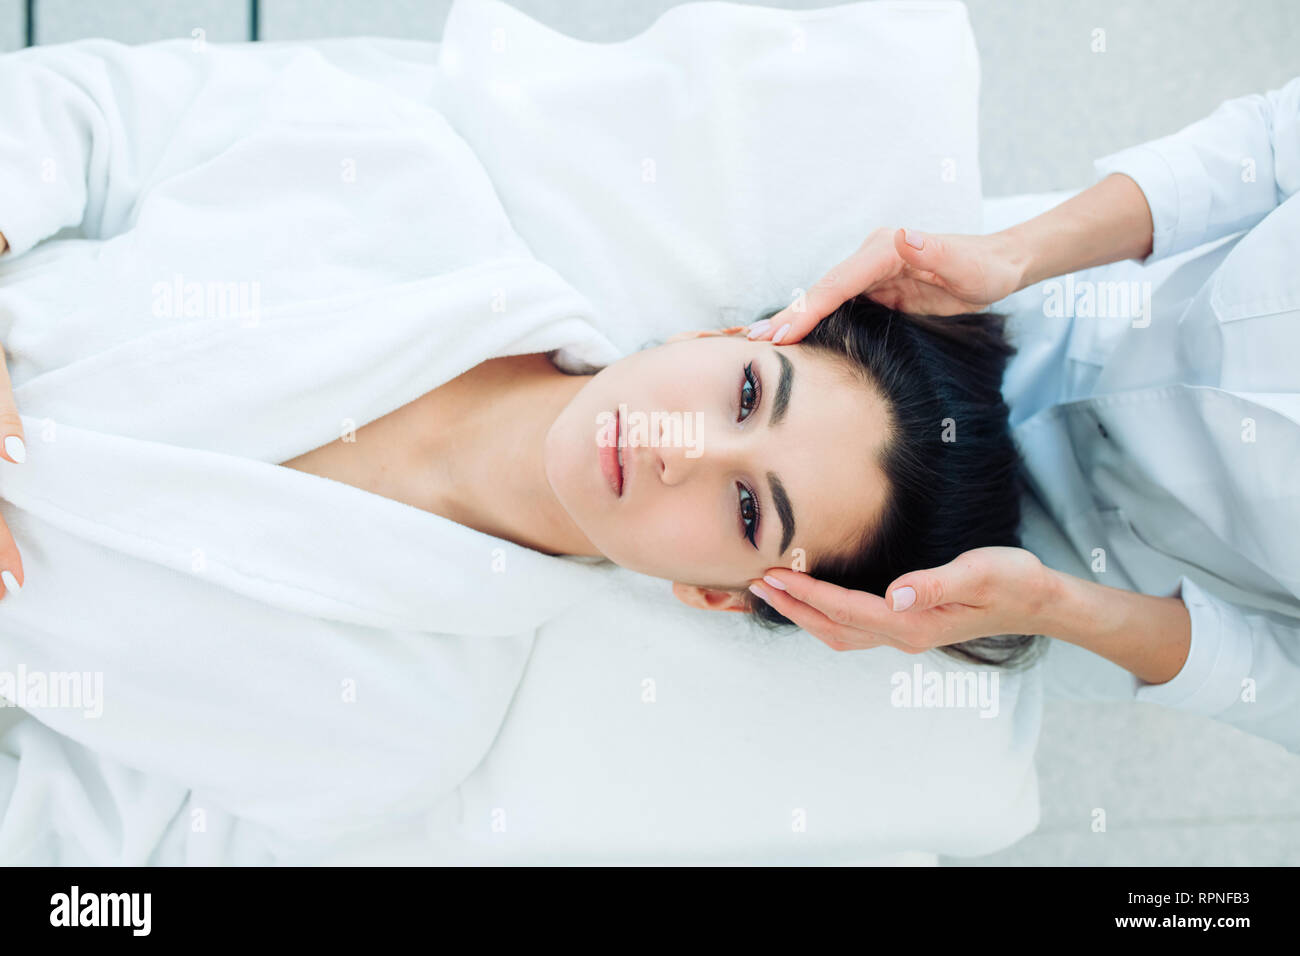 Facial spa cosmetology procedure, top view. Skin care lift anti age massage. Caucasian brunette woman dressed in white bathrobe, receiving anti-wrinkl - Stock Image